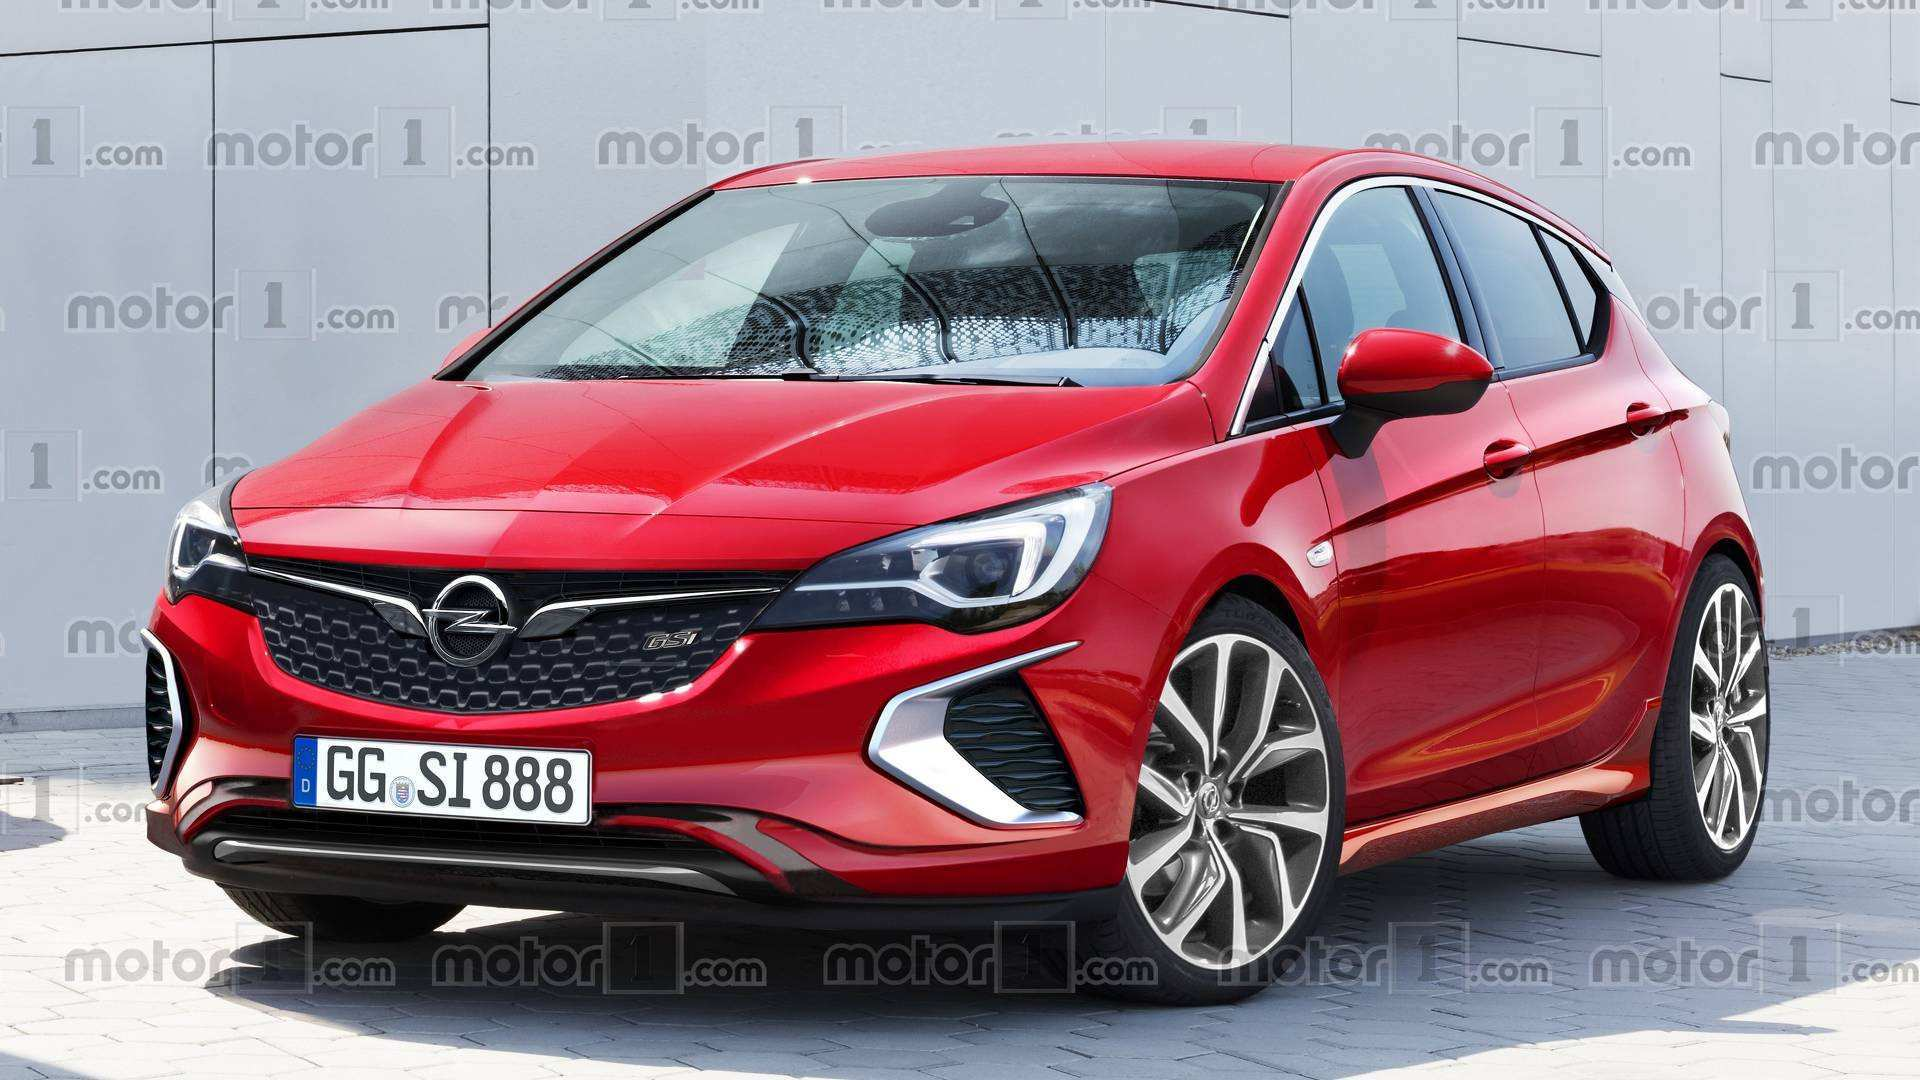 30 All New 2020 Opel Astra Price Design And Review